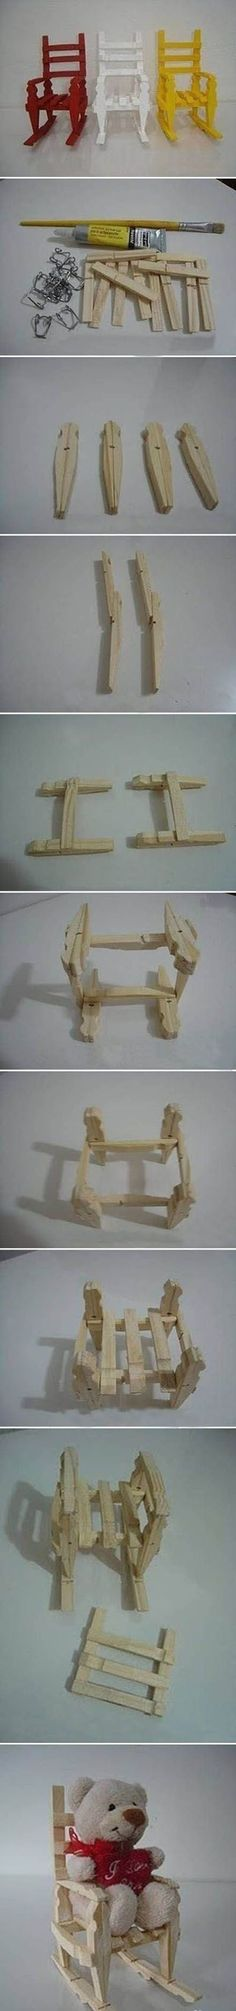 mini rocking chair made from clothespins